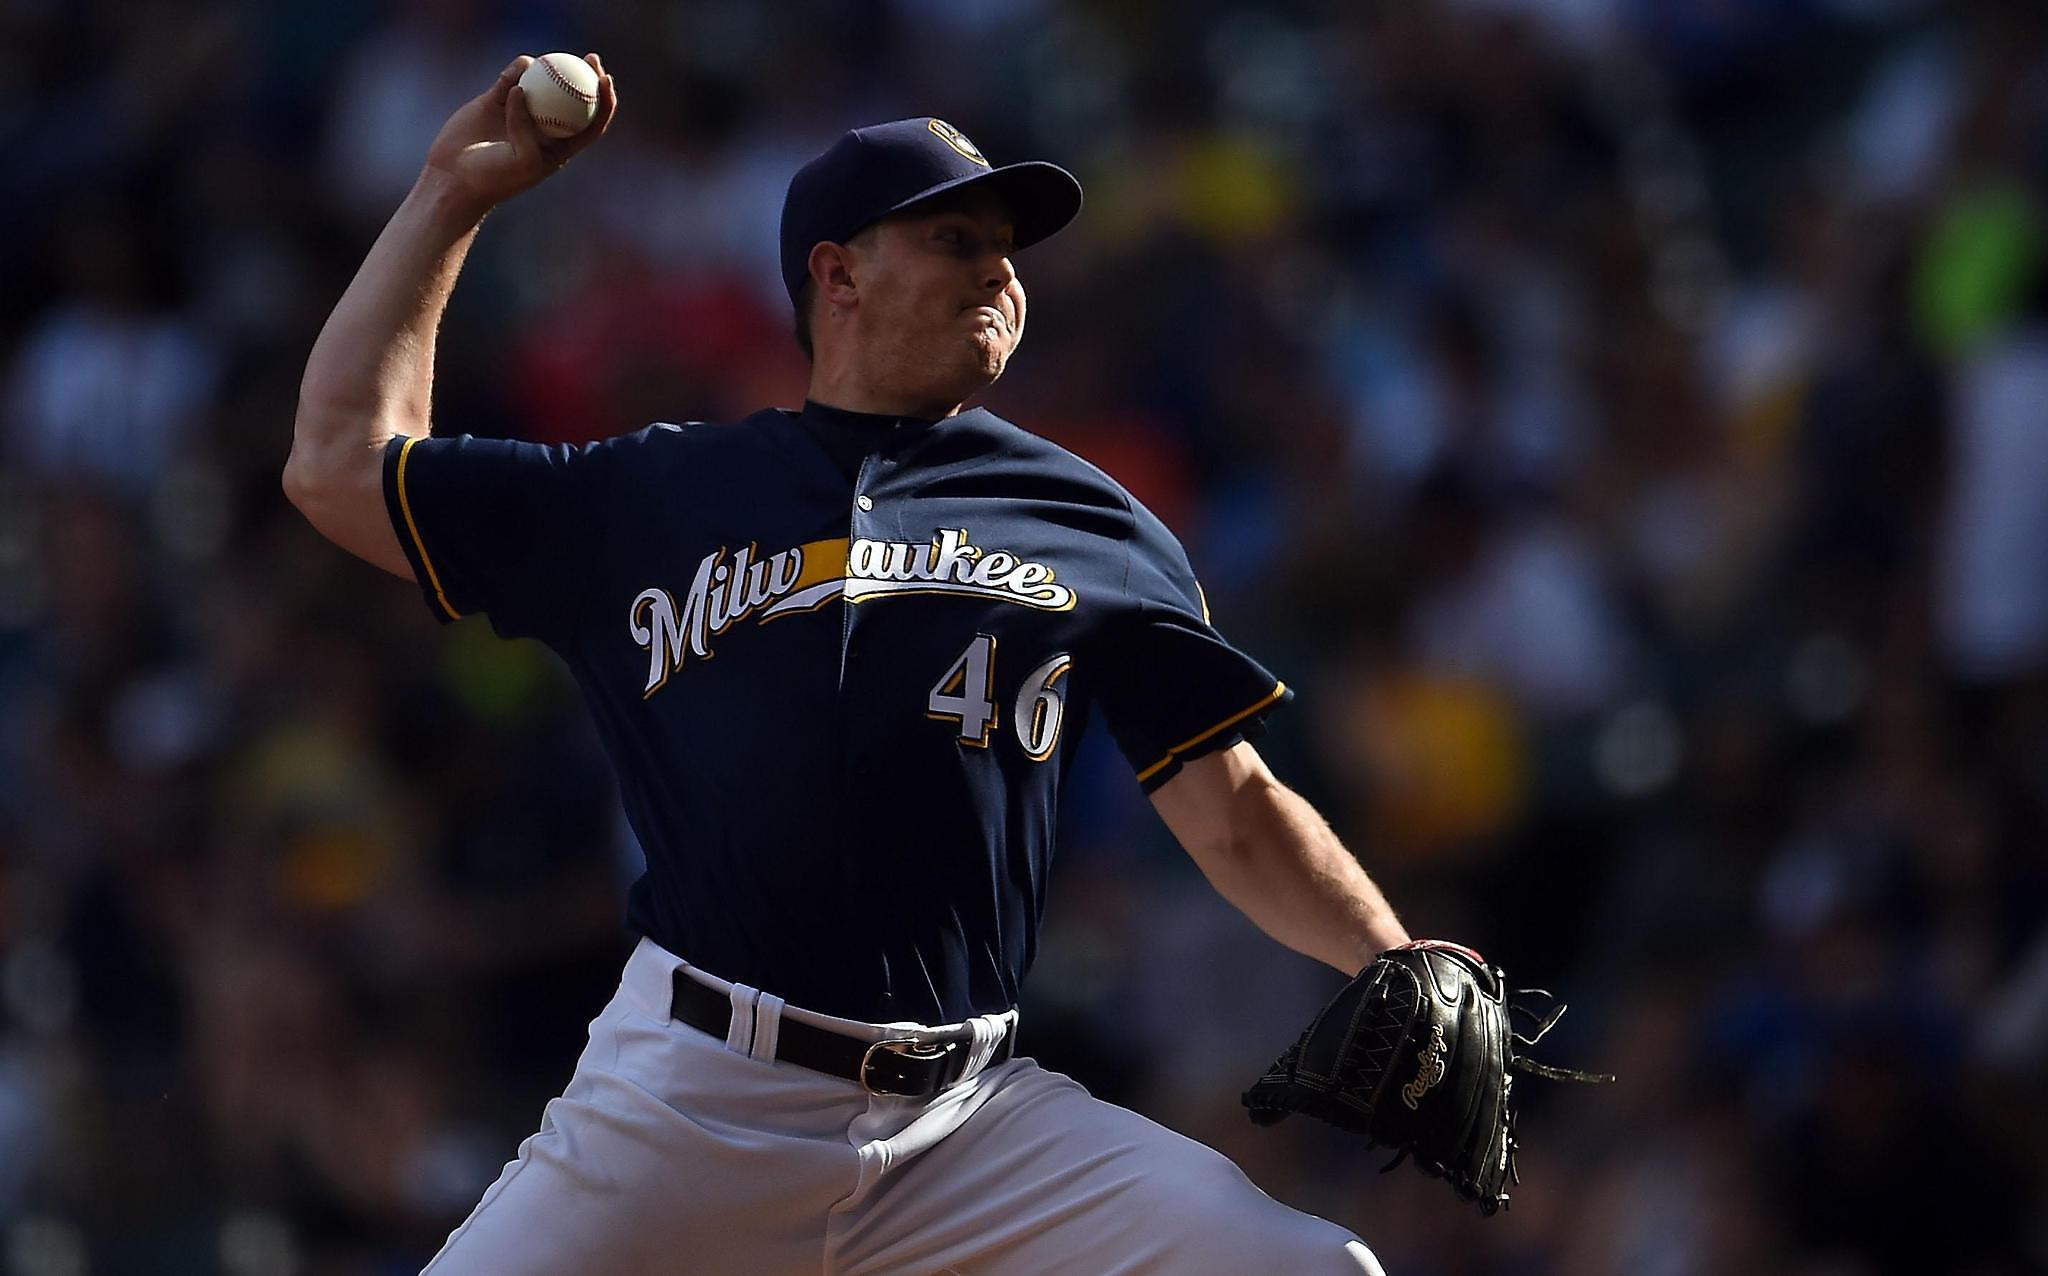 Notes: Reliever Corey Knebel hitting his stride